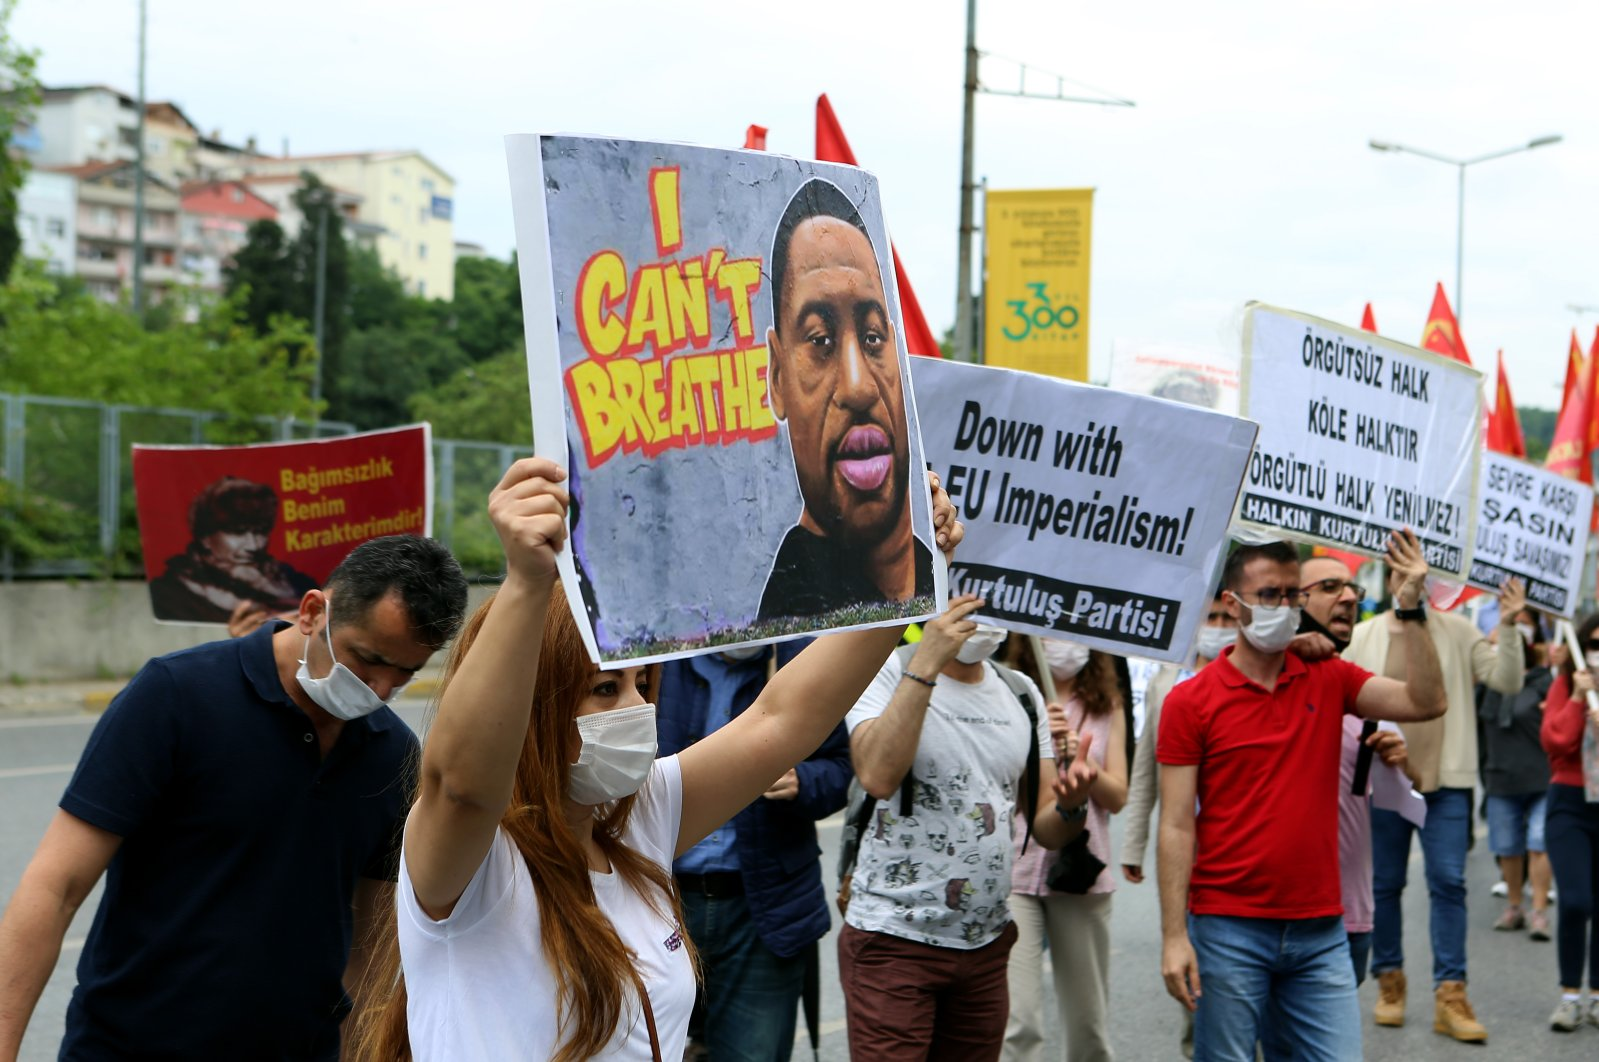 Protesters decry the killing of George Floyd outside the U.S. Consulate General in Istanbul, Turkey, June 14, 2020. (AA Photo)